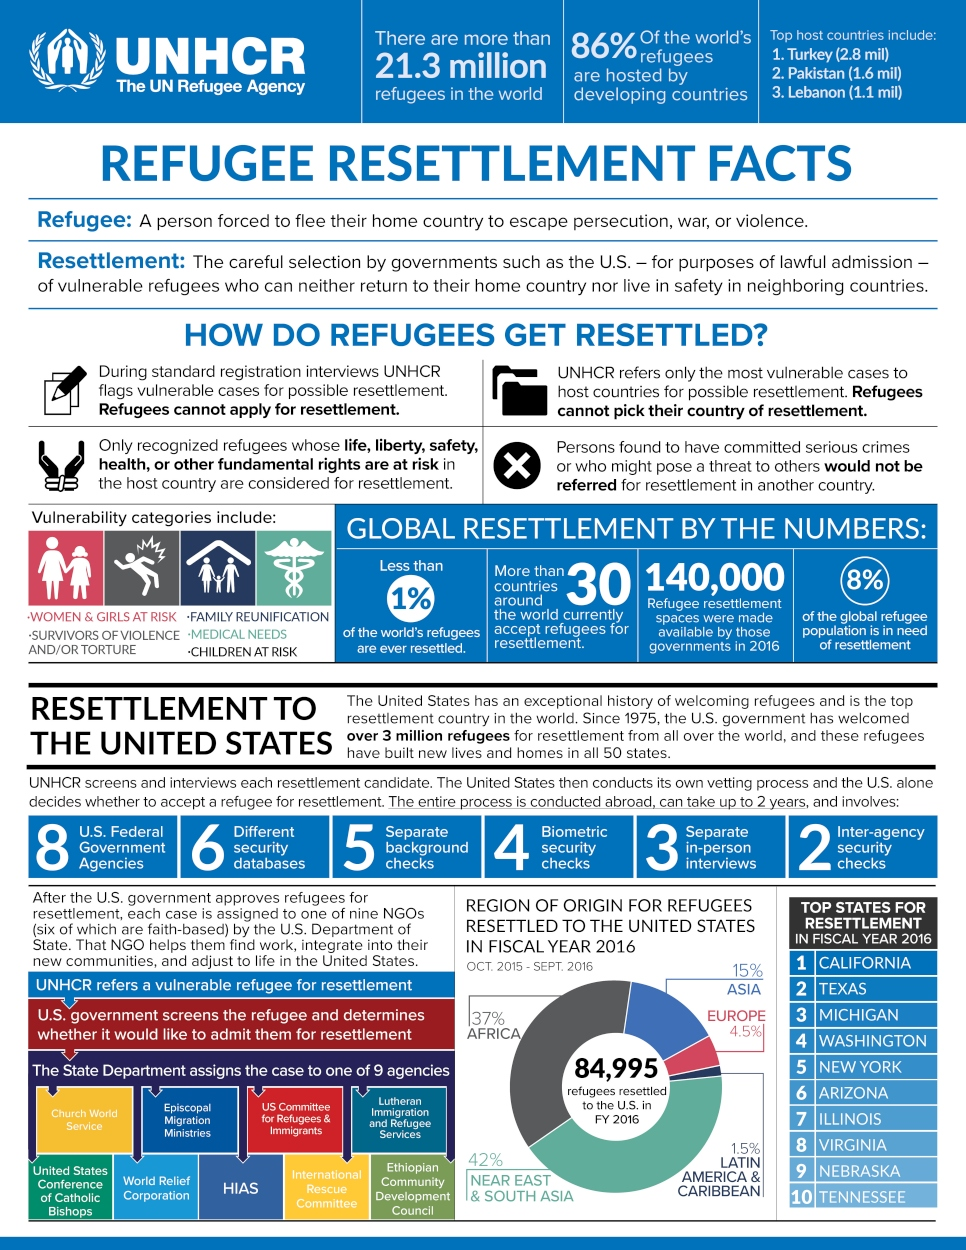 Image from UNHCR website